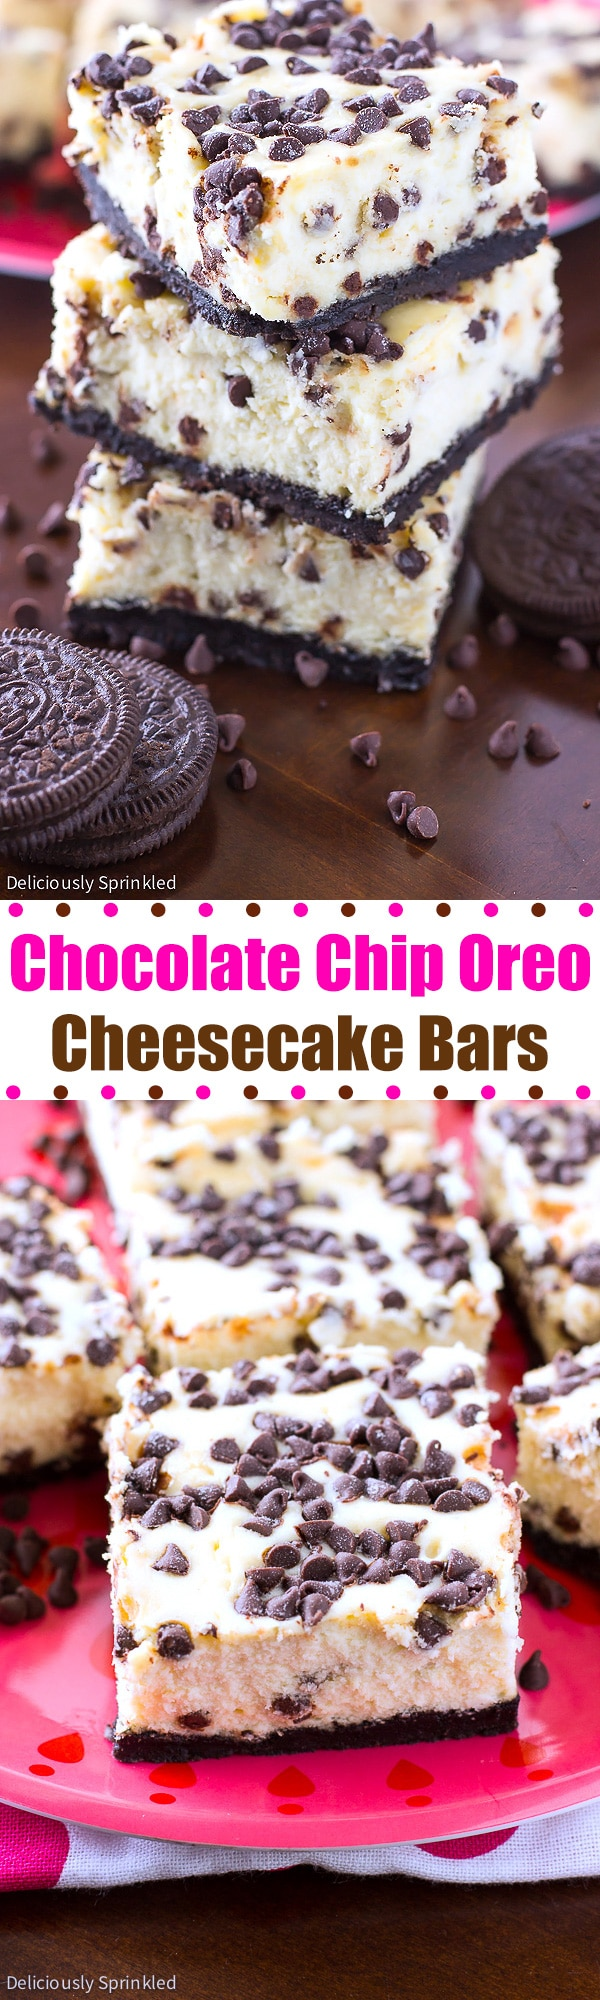 Chocolate Chip Oreo Cheesecake Bars Deliciously Sprinkled